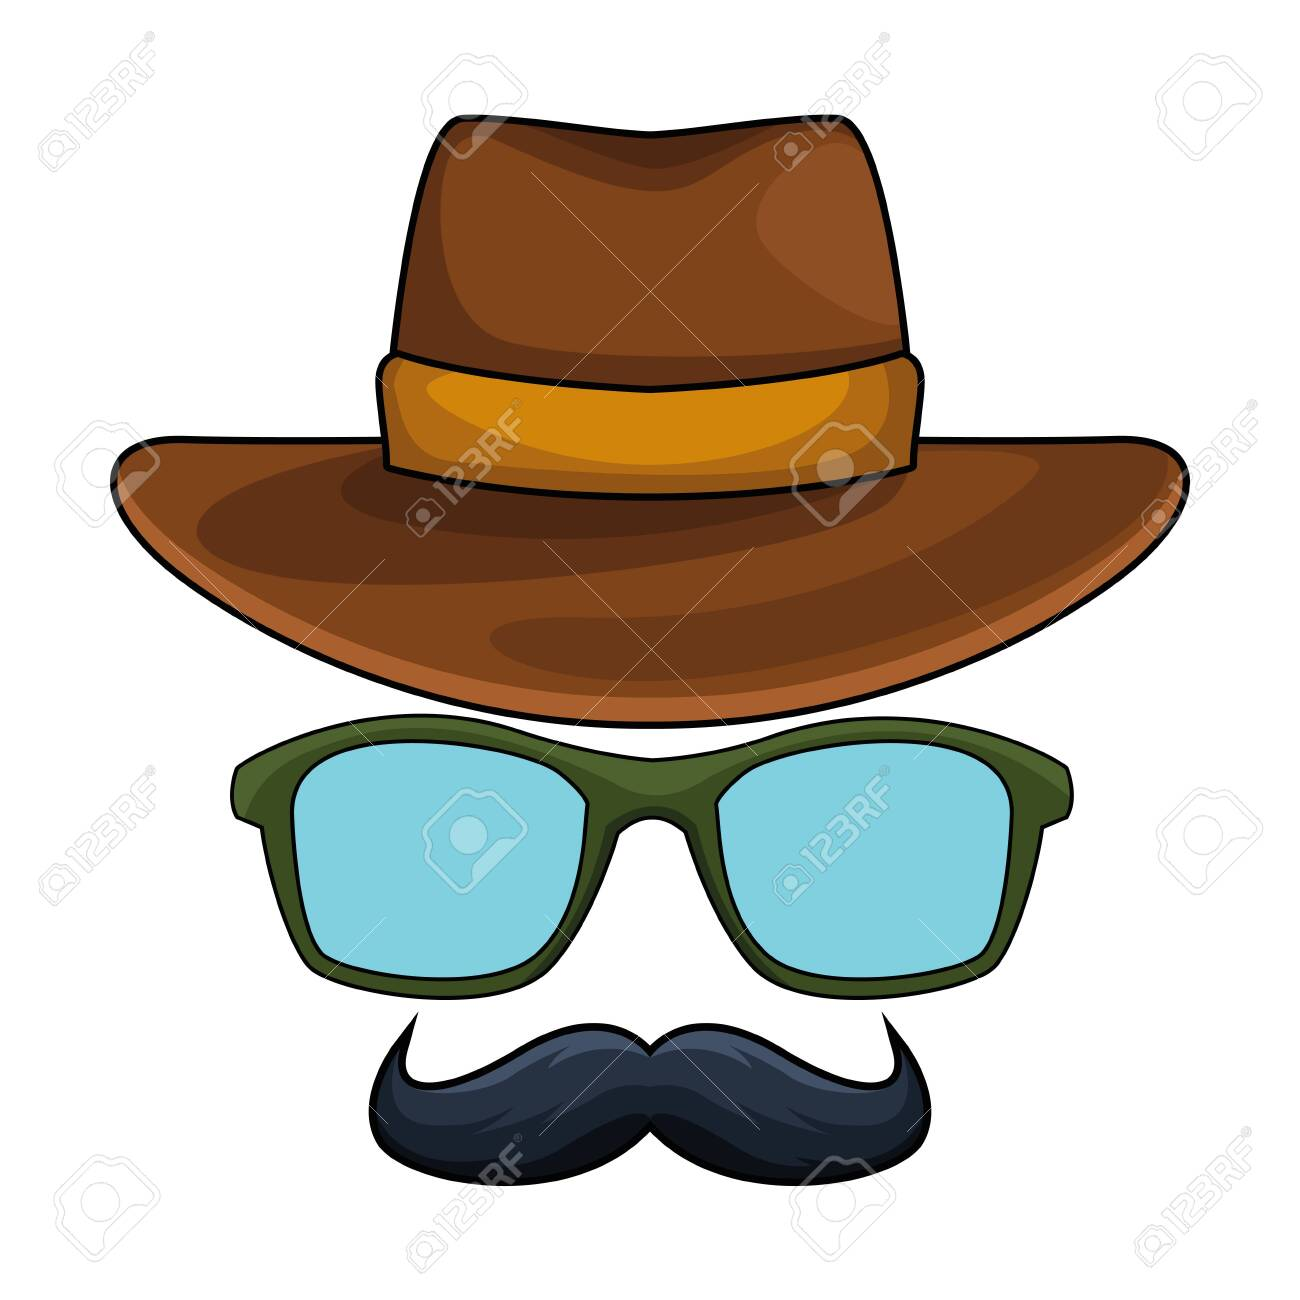 cowboy hat, glasses and moustache disguise icon cartoon vector illustration graphic design - 125410695